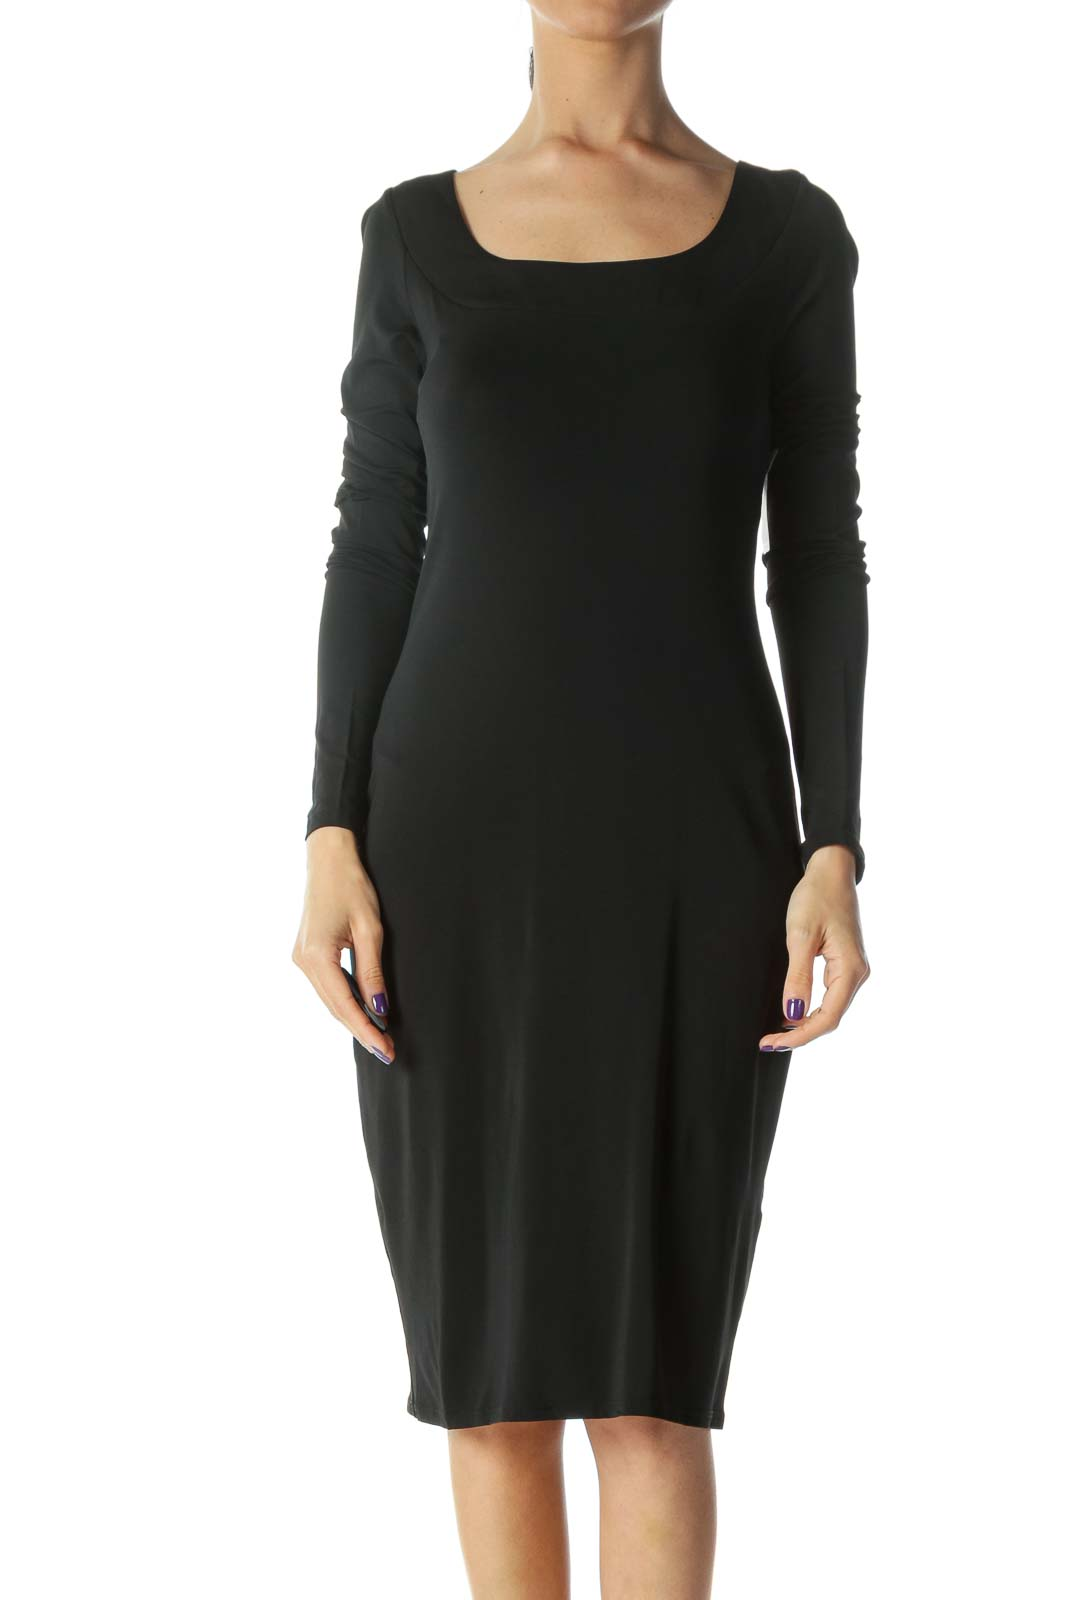 Black Cowl Back Dress